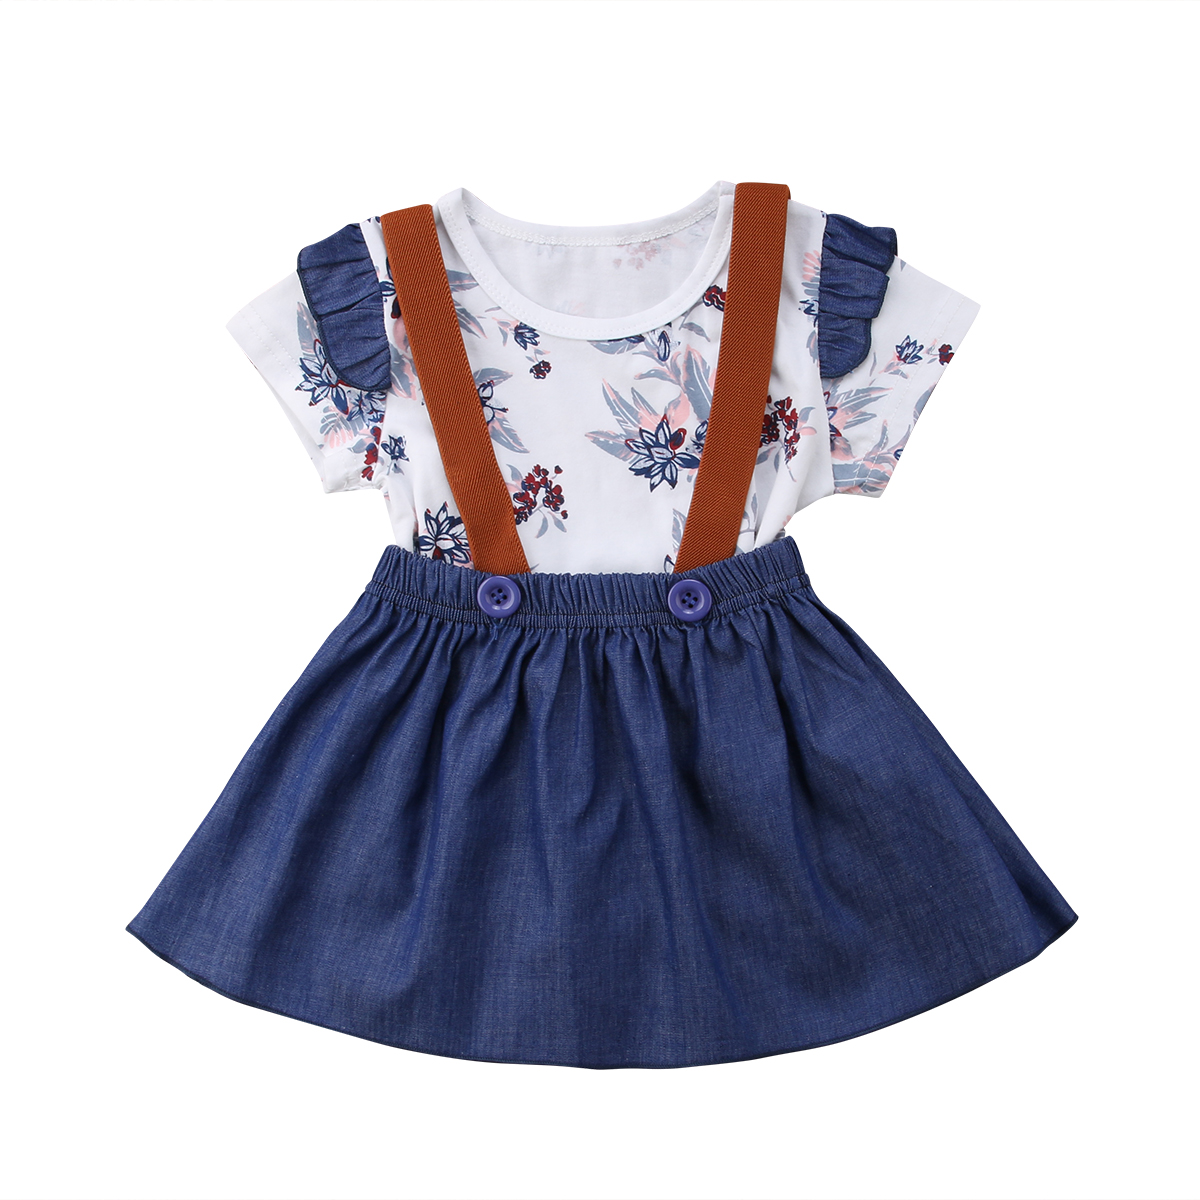 2PCS Newest Sale Toddler Kids Baby Girl HOT STYLE Floral Short Sleeve Bodysuit+Denim Solid Skirt Fashion Outfits Set 0-24M